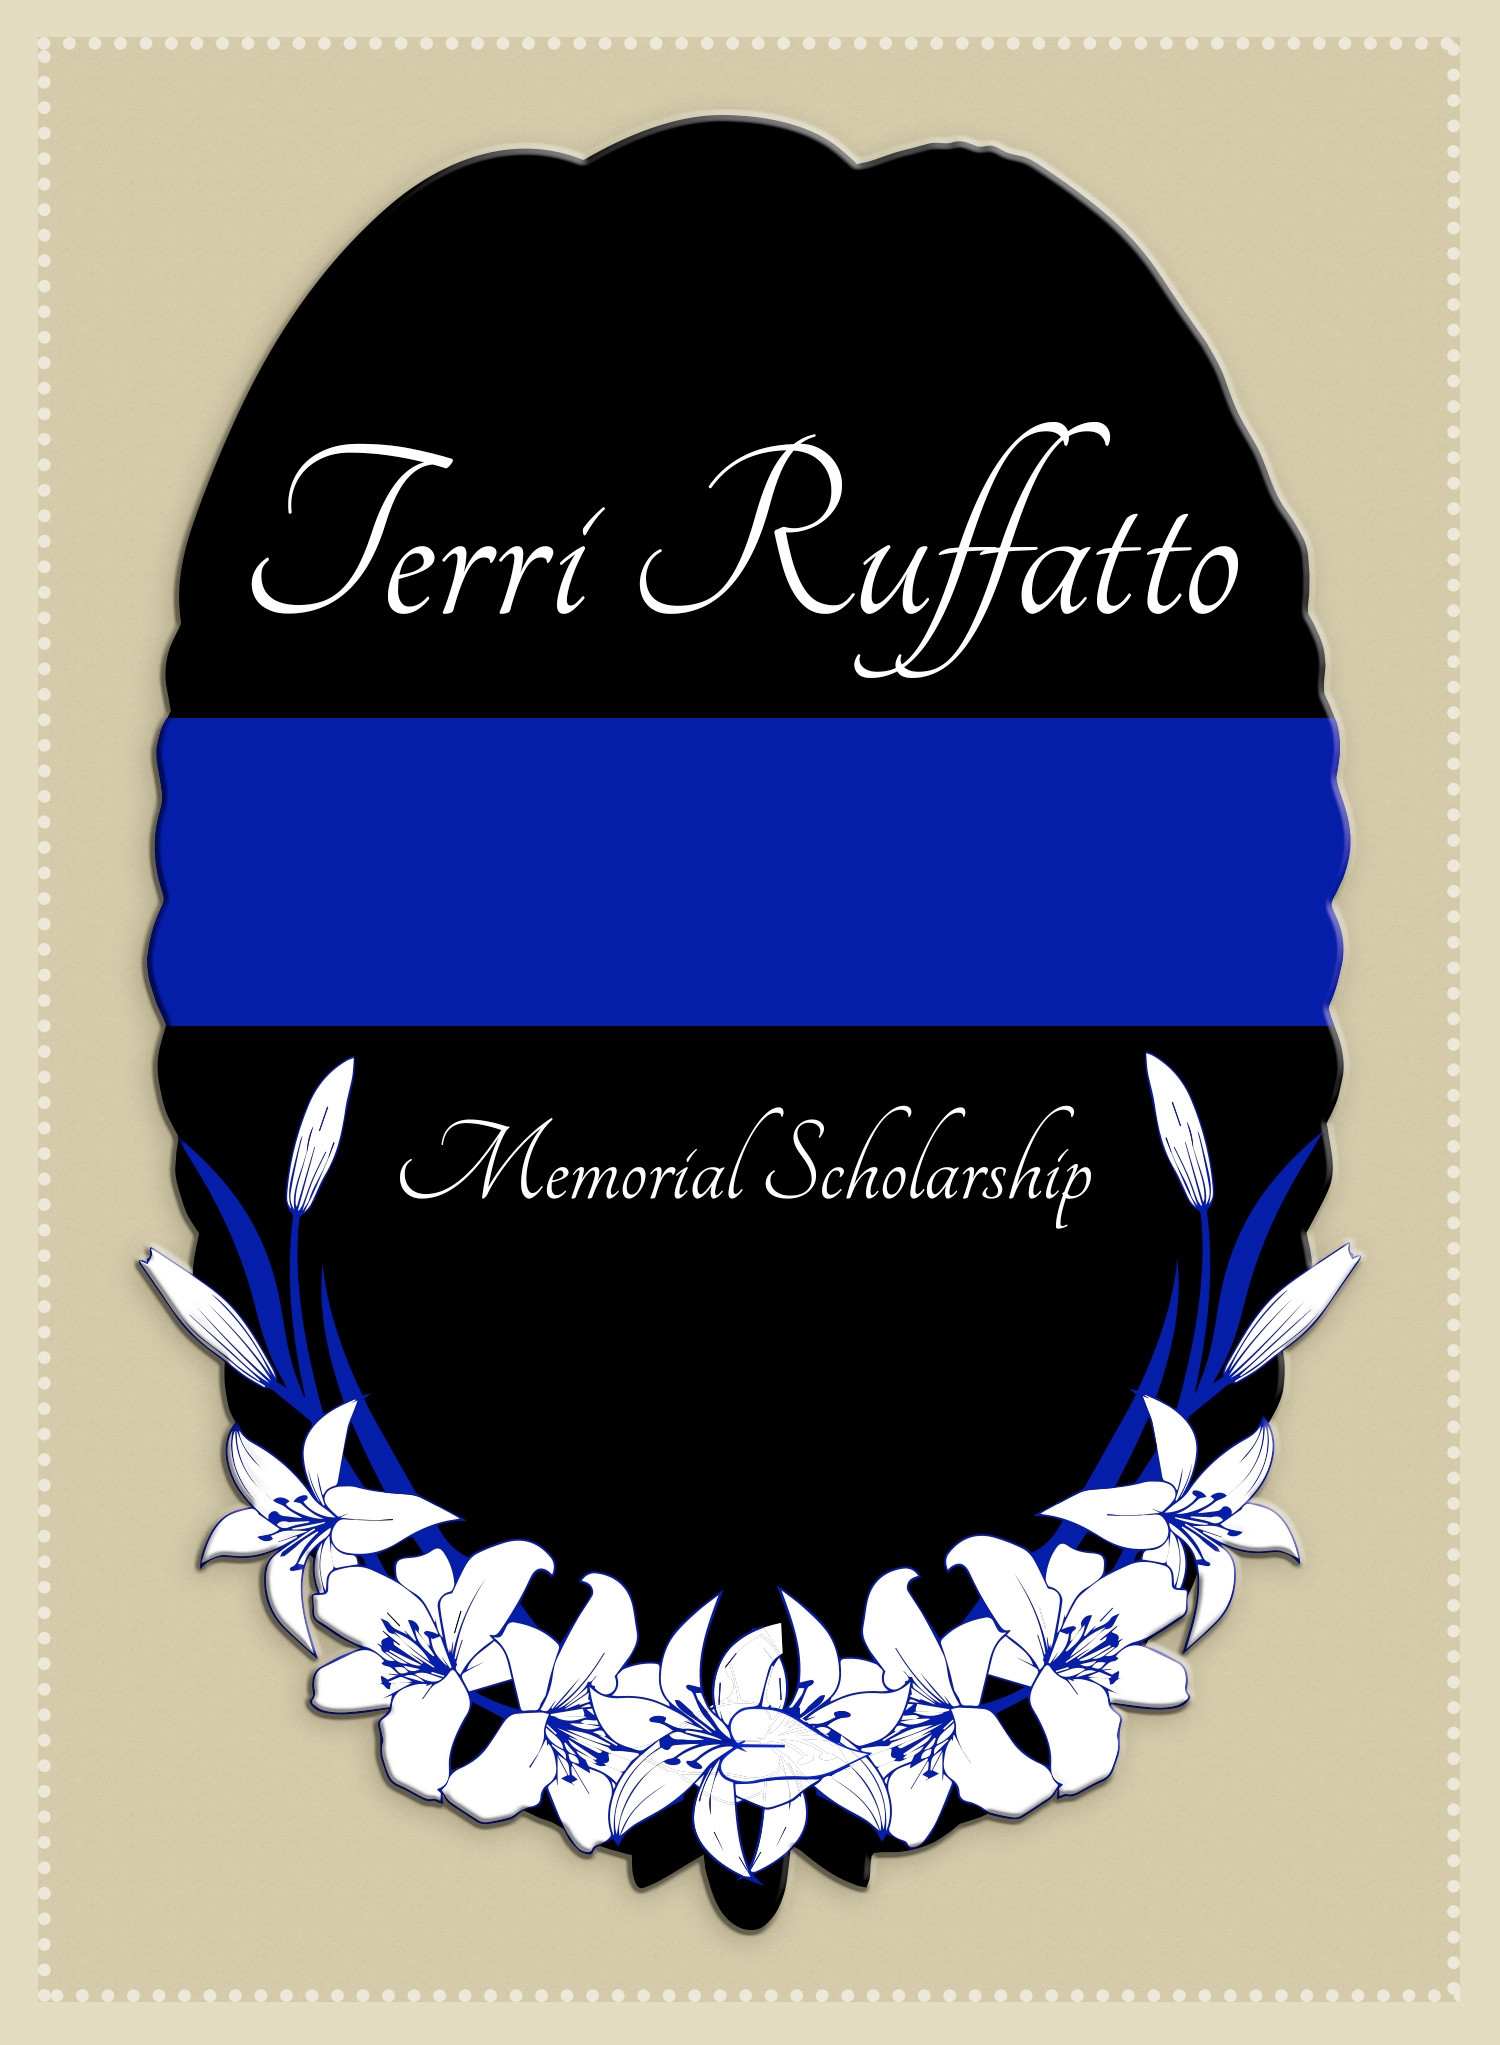 The Terri Ruffatto Memorial Scholarship awards scholarships to LCMS seminary students based on an express interest in practical theology in the area of chaplaincy. The scholarship funds cover   Christian Law Enforcement Chaplaincy Seminar   tuition and room & board to attend the seminar.